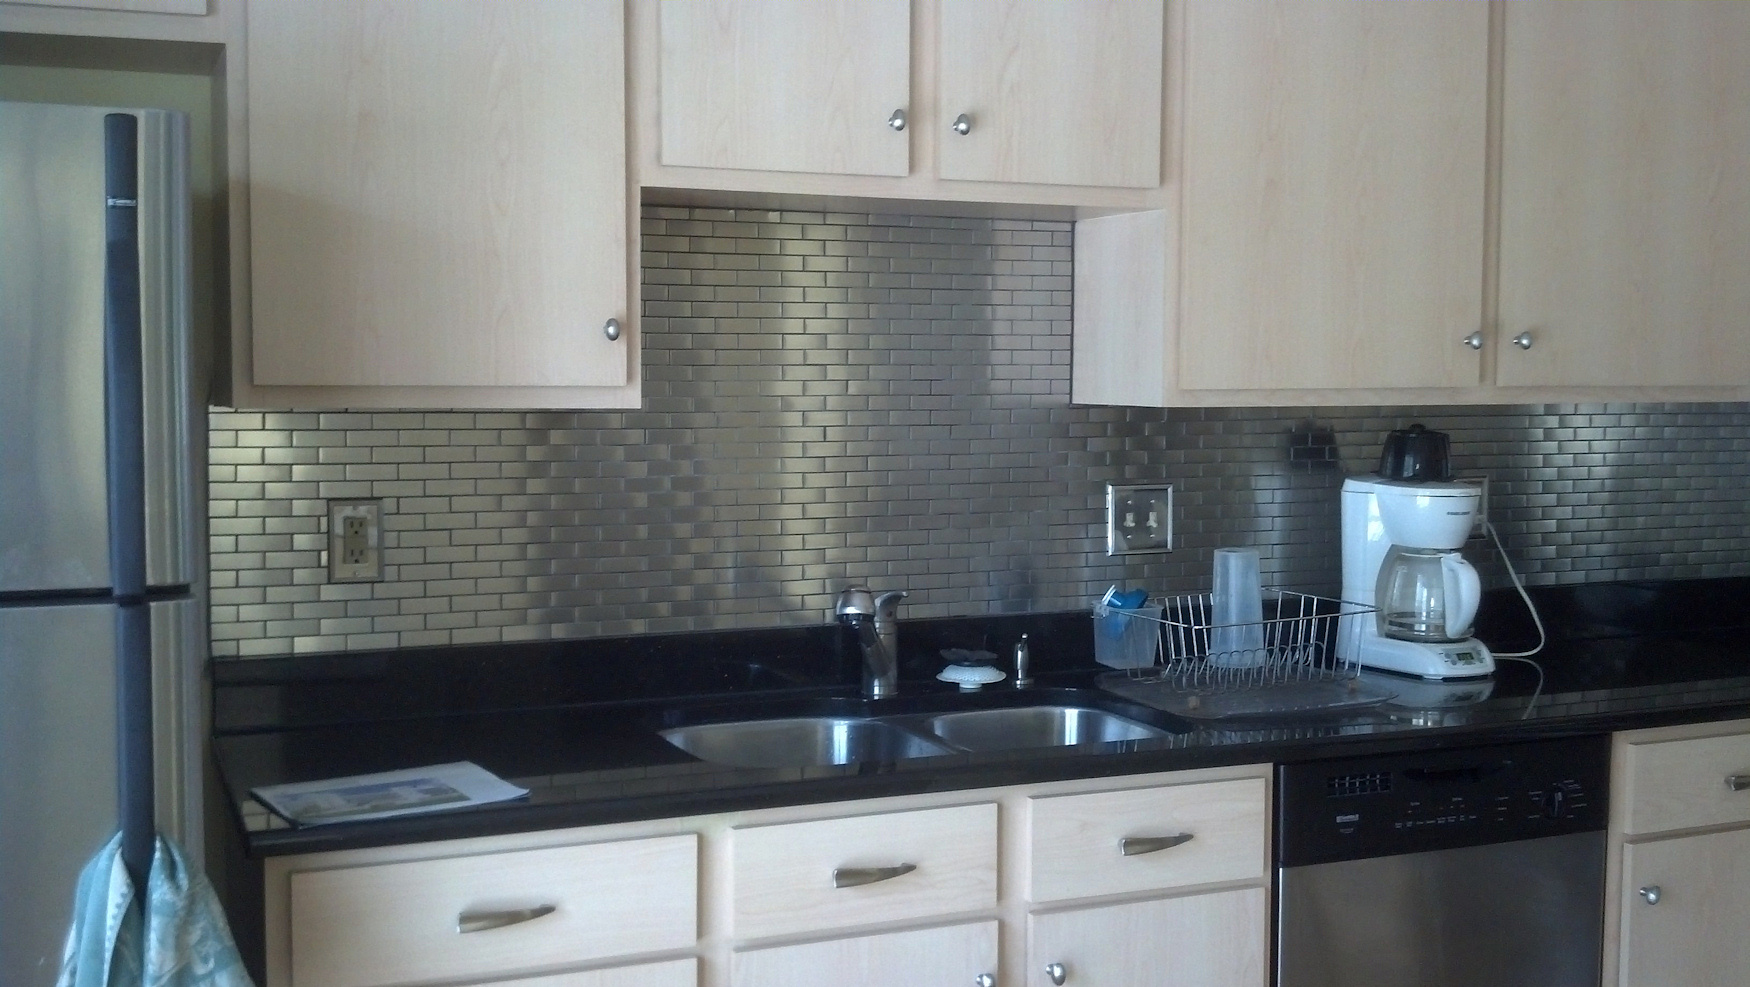 Modern ikea stainless steel backsplash homesfeed for Bathroom backsplash ideas